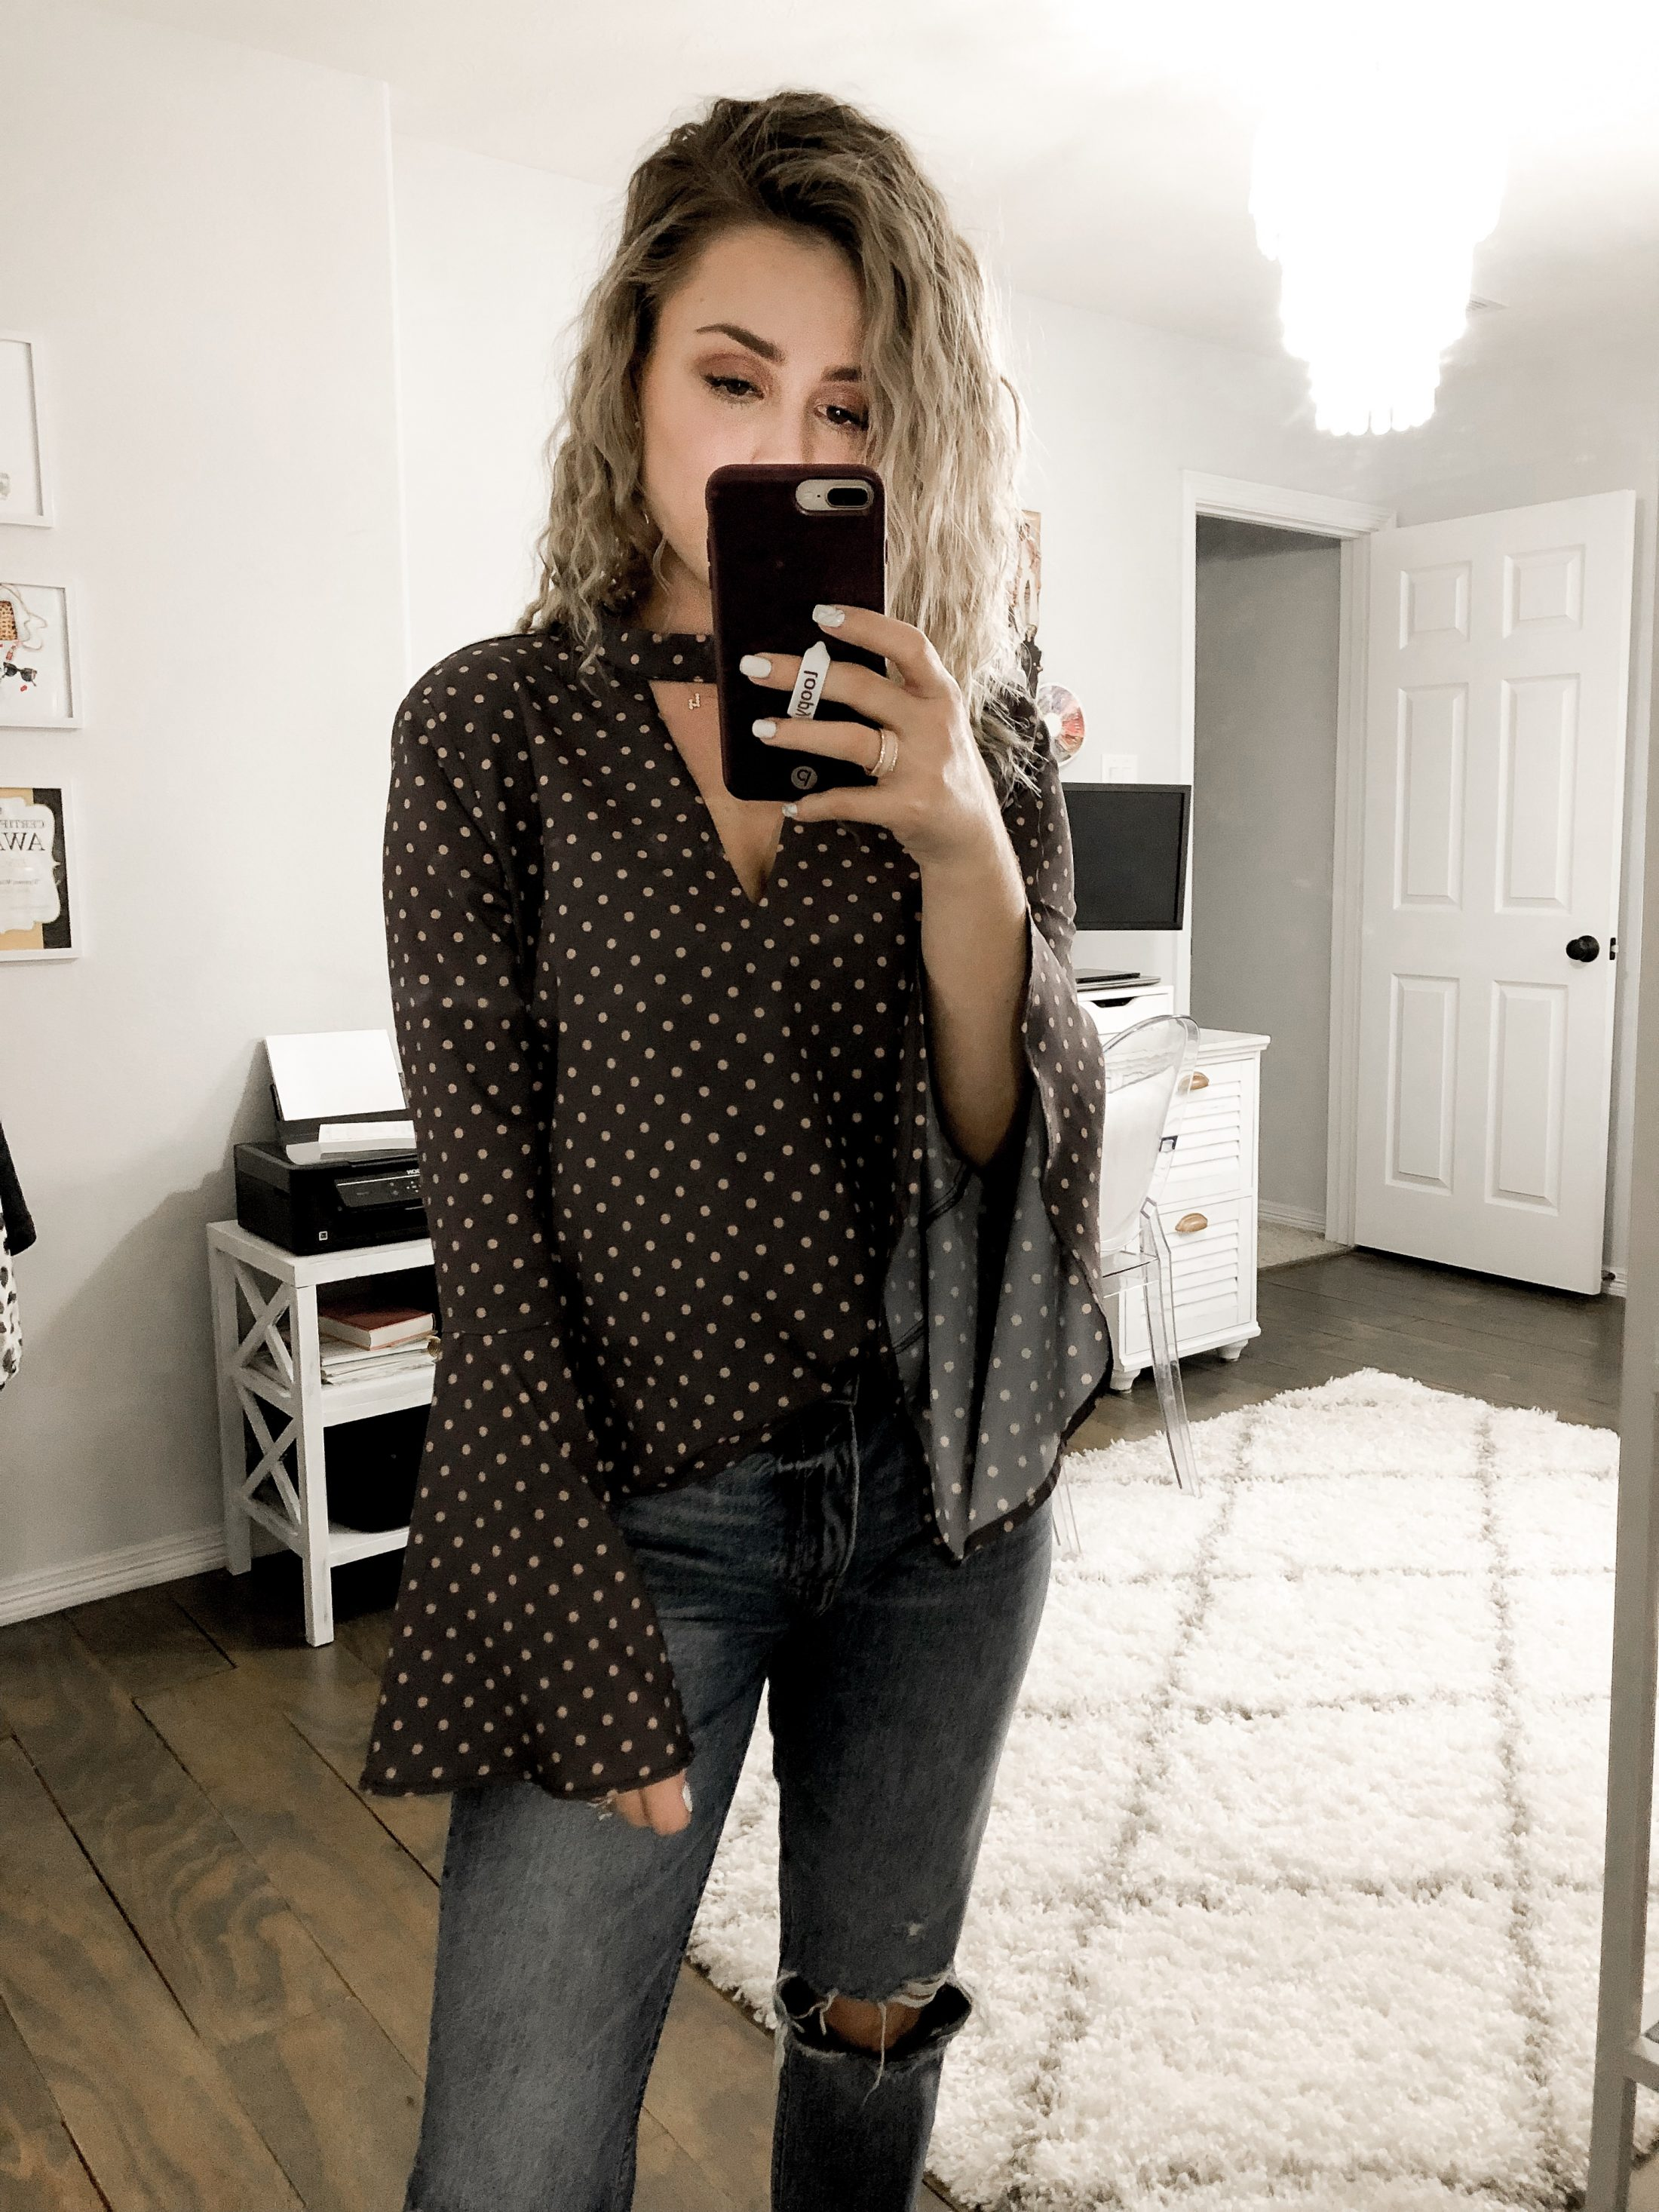 Houston Fashion blogger Uptown with Elly Brown shares her favorite fashion finds and tops from Amazon!